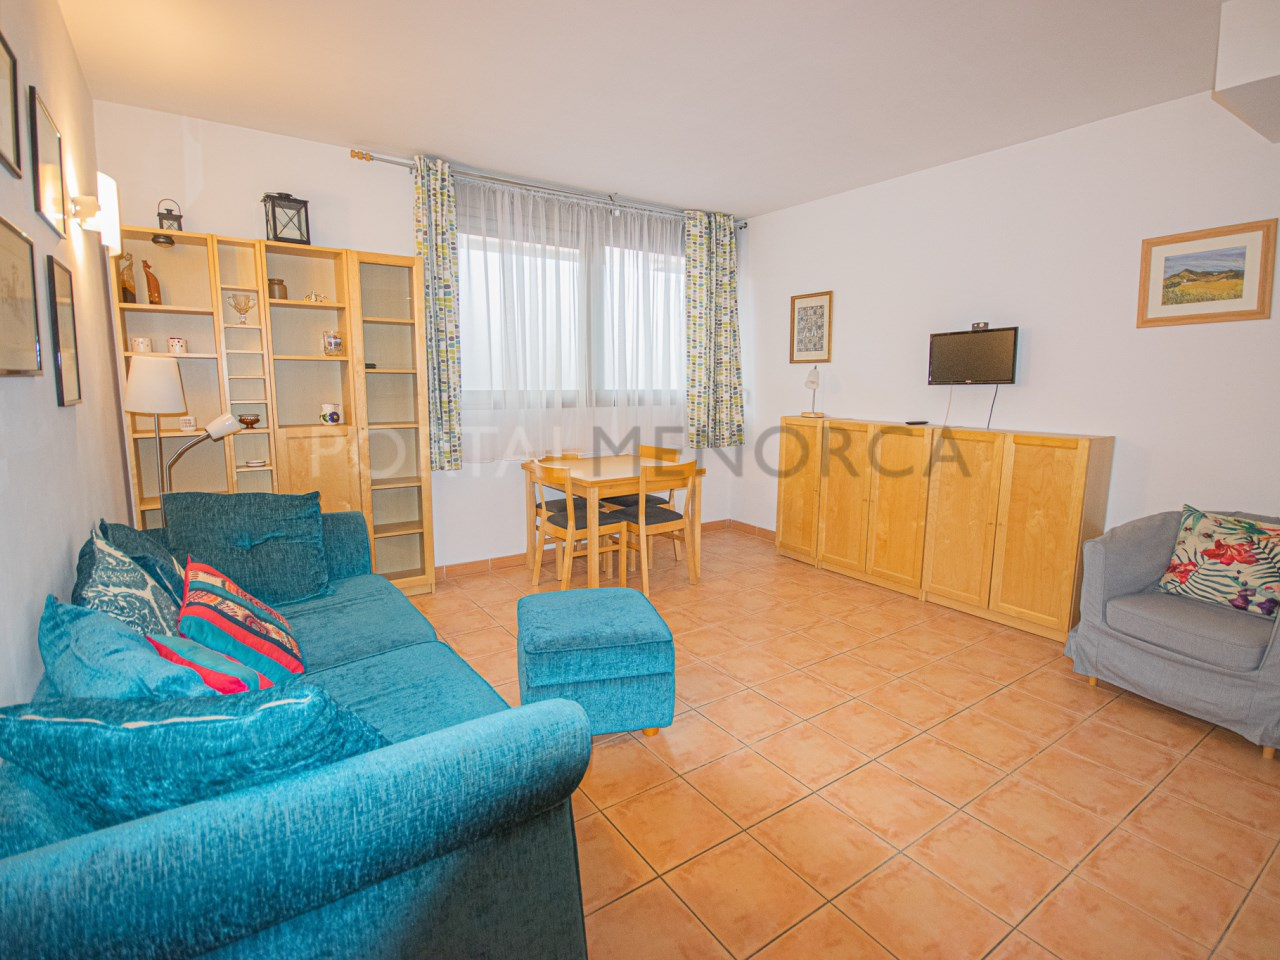 Flat with one bedroom in Es Mercadal with parking, storeroom and pool.